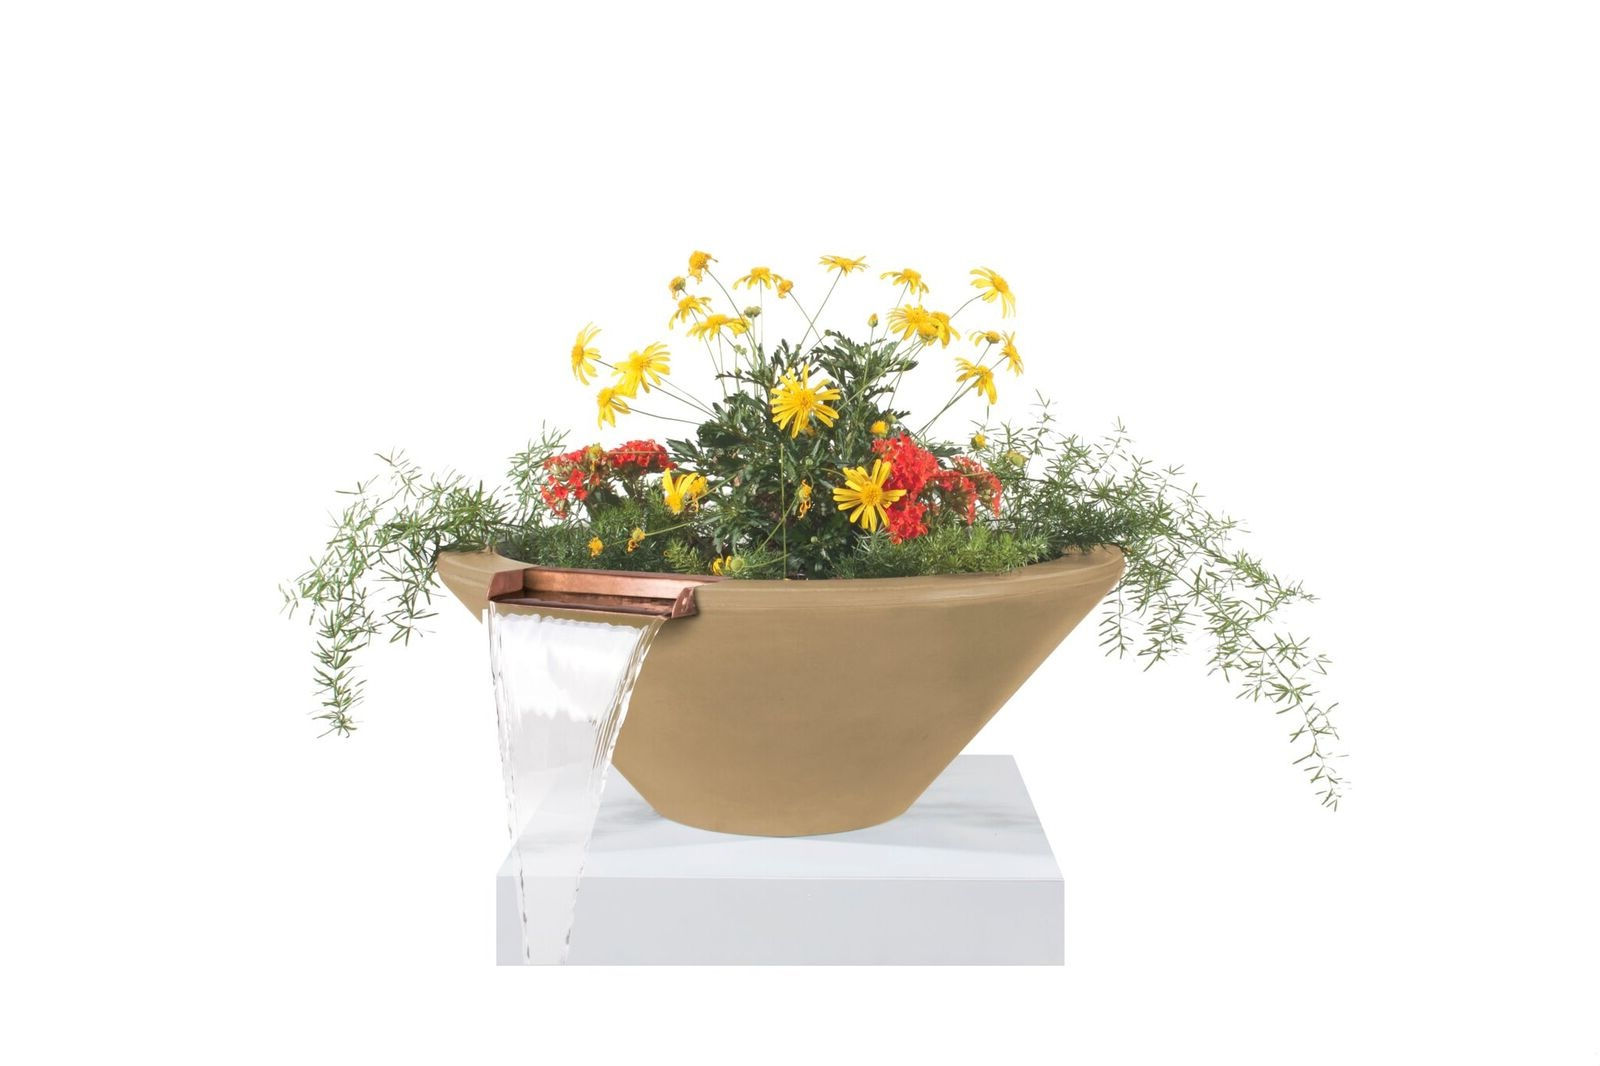 24 Inch Cazo Planter and Water Bowl